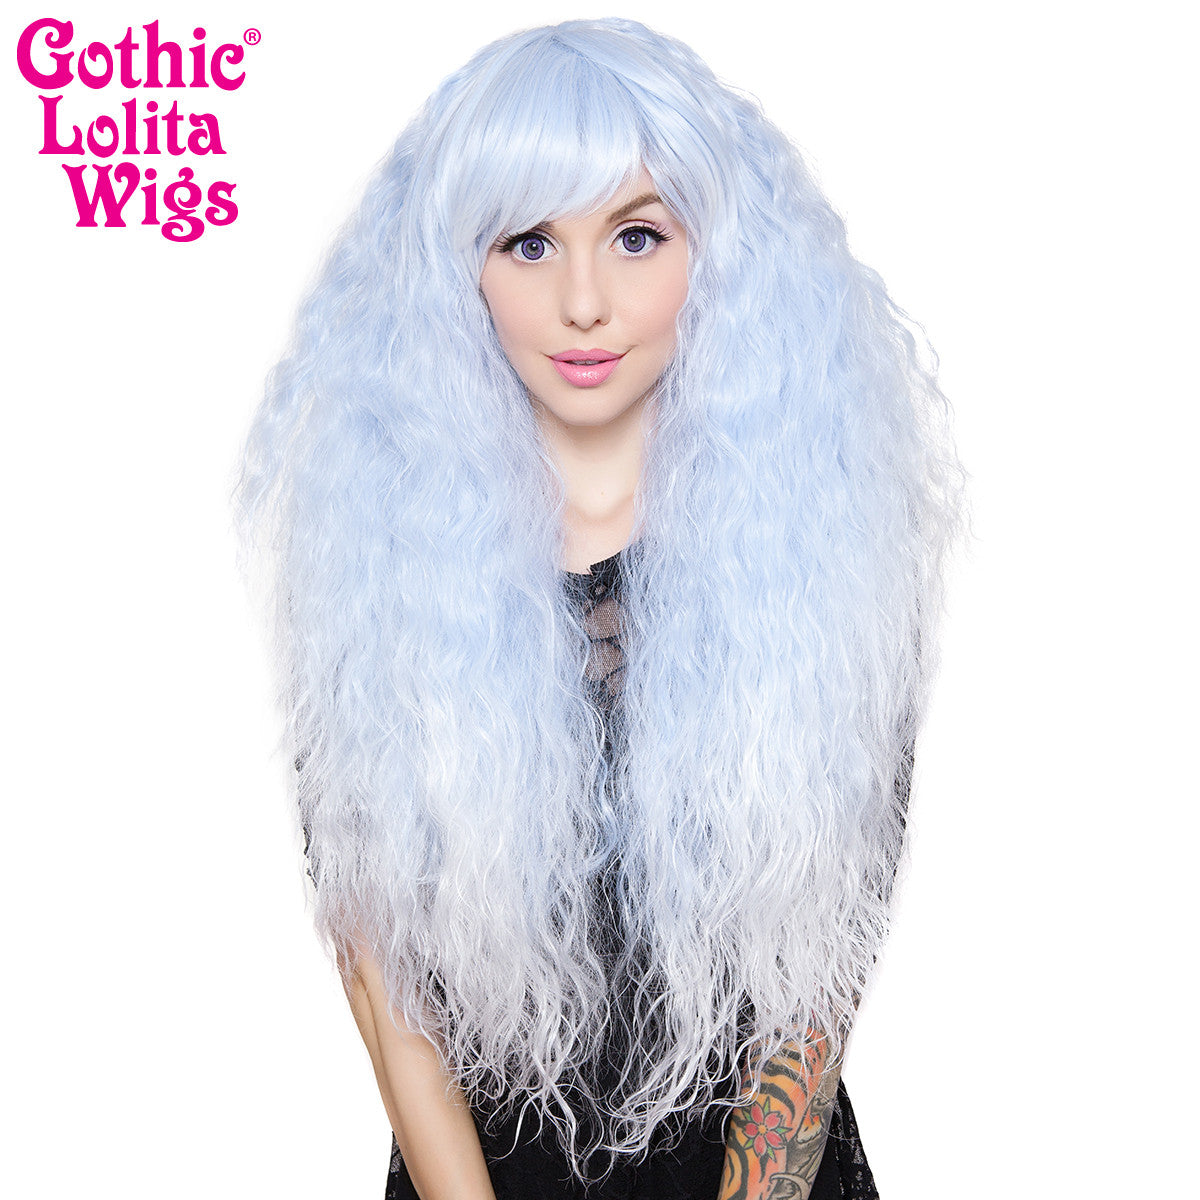 Gothic Lolita Wigs® <br> Rhapsody™ Collection - Sax Fade -00114